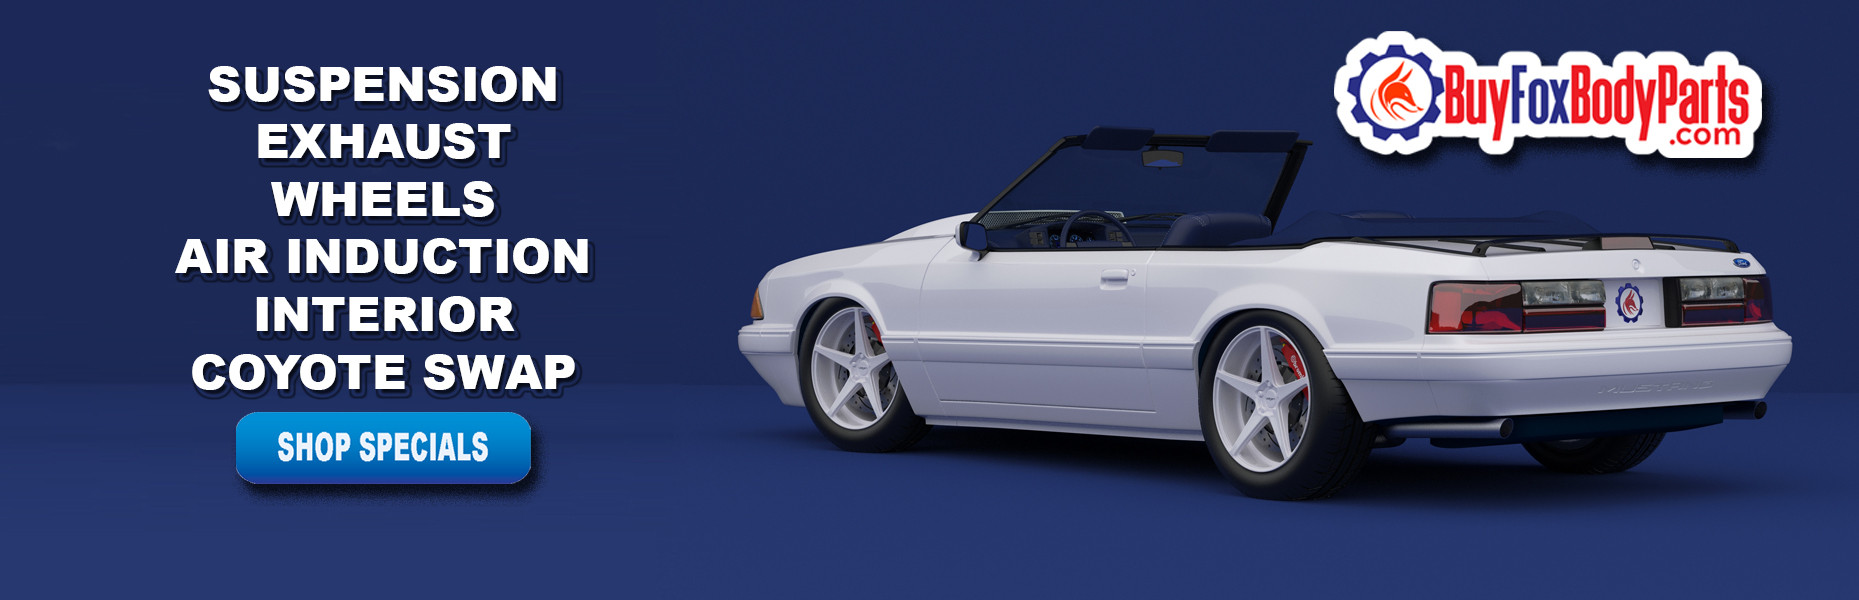 BuyFoxBodyParts.com has a large selection of 1979-1993 Fox Body Mustang Parts like suspension, exhaust, wheels, cold air intakes, interior and coyote swap parts.